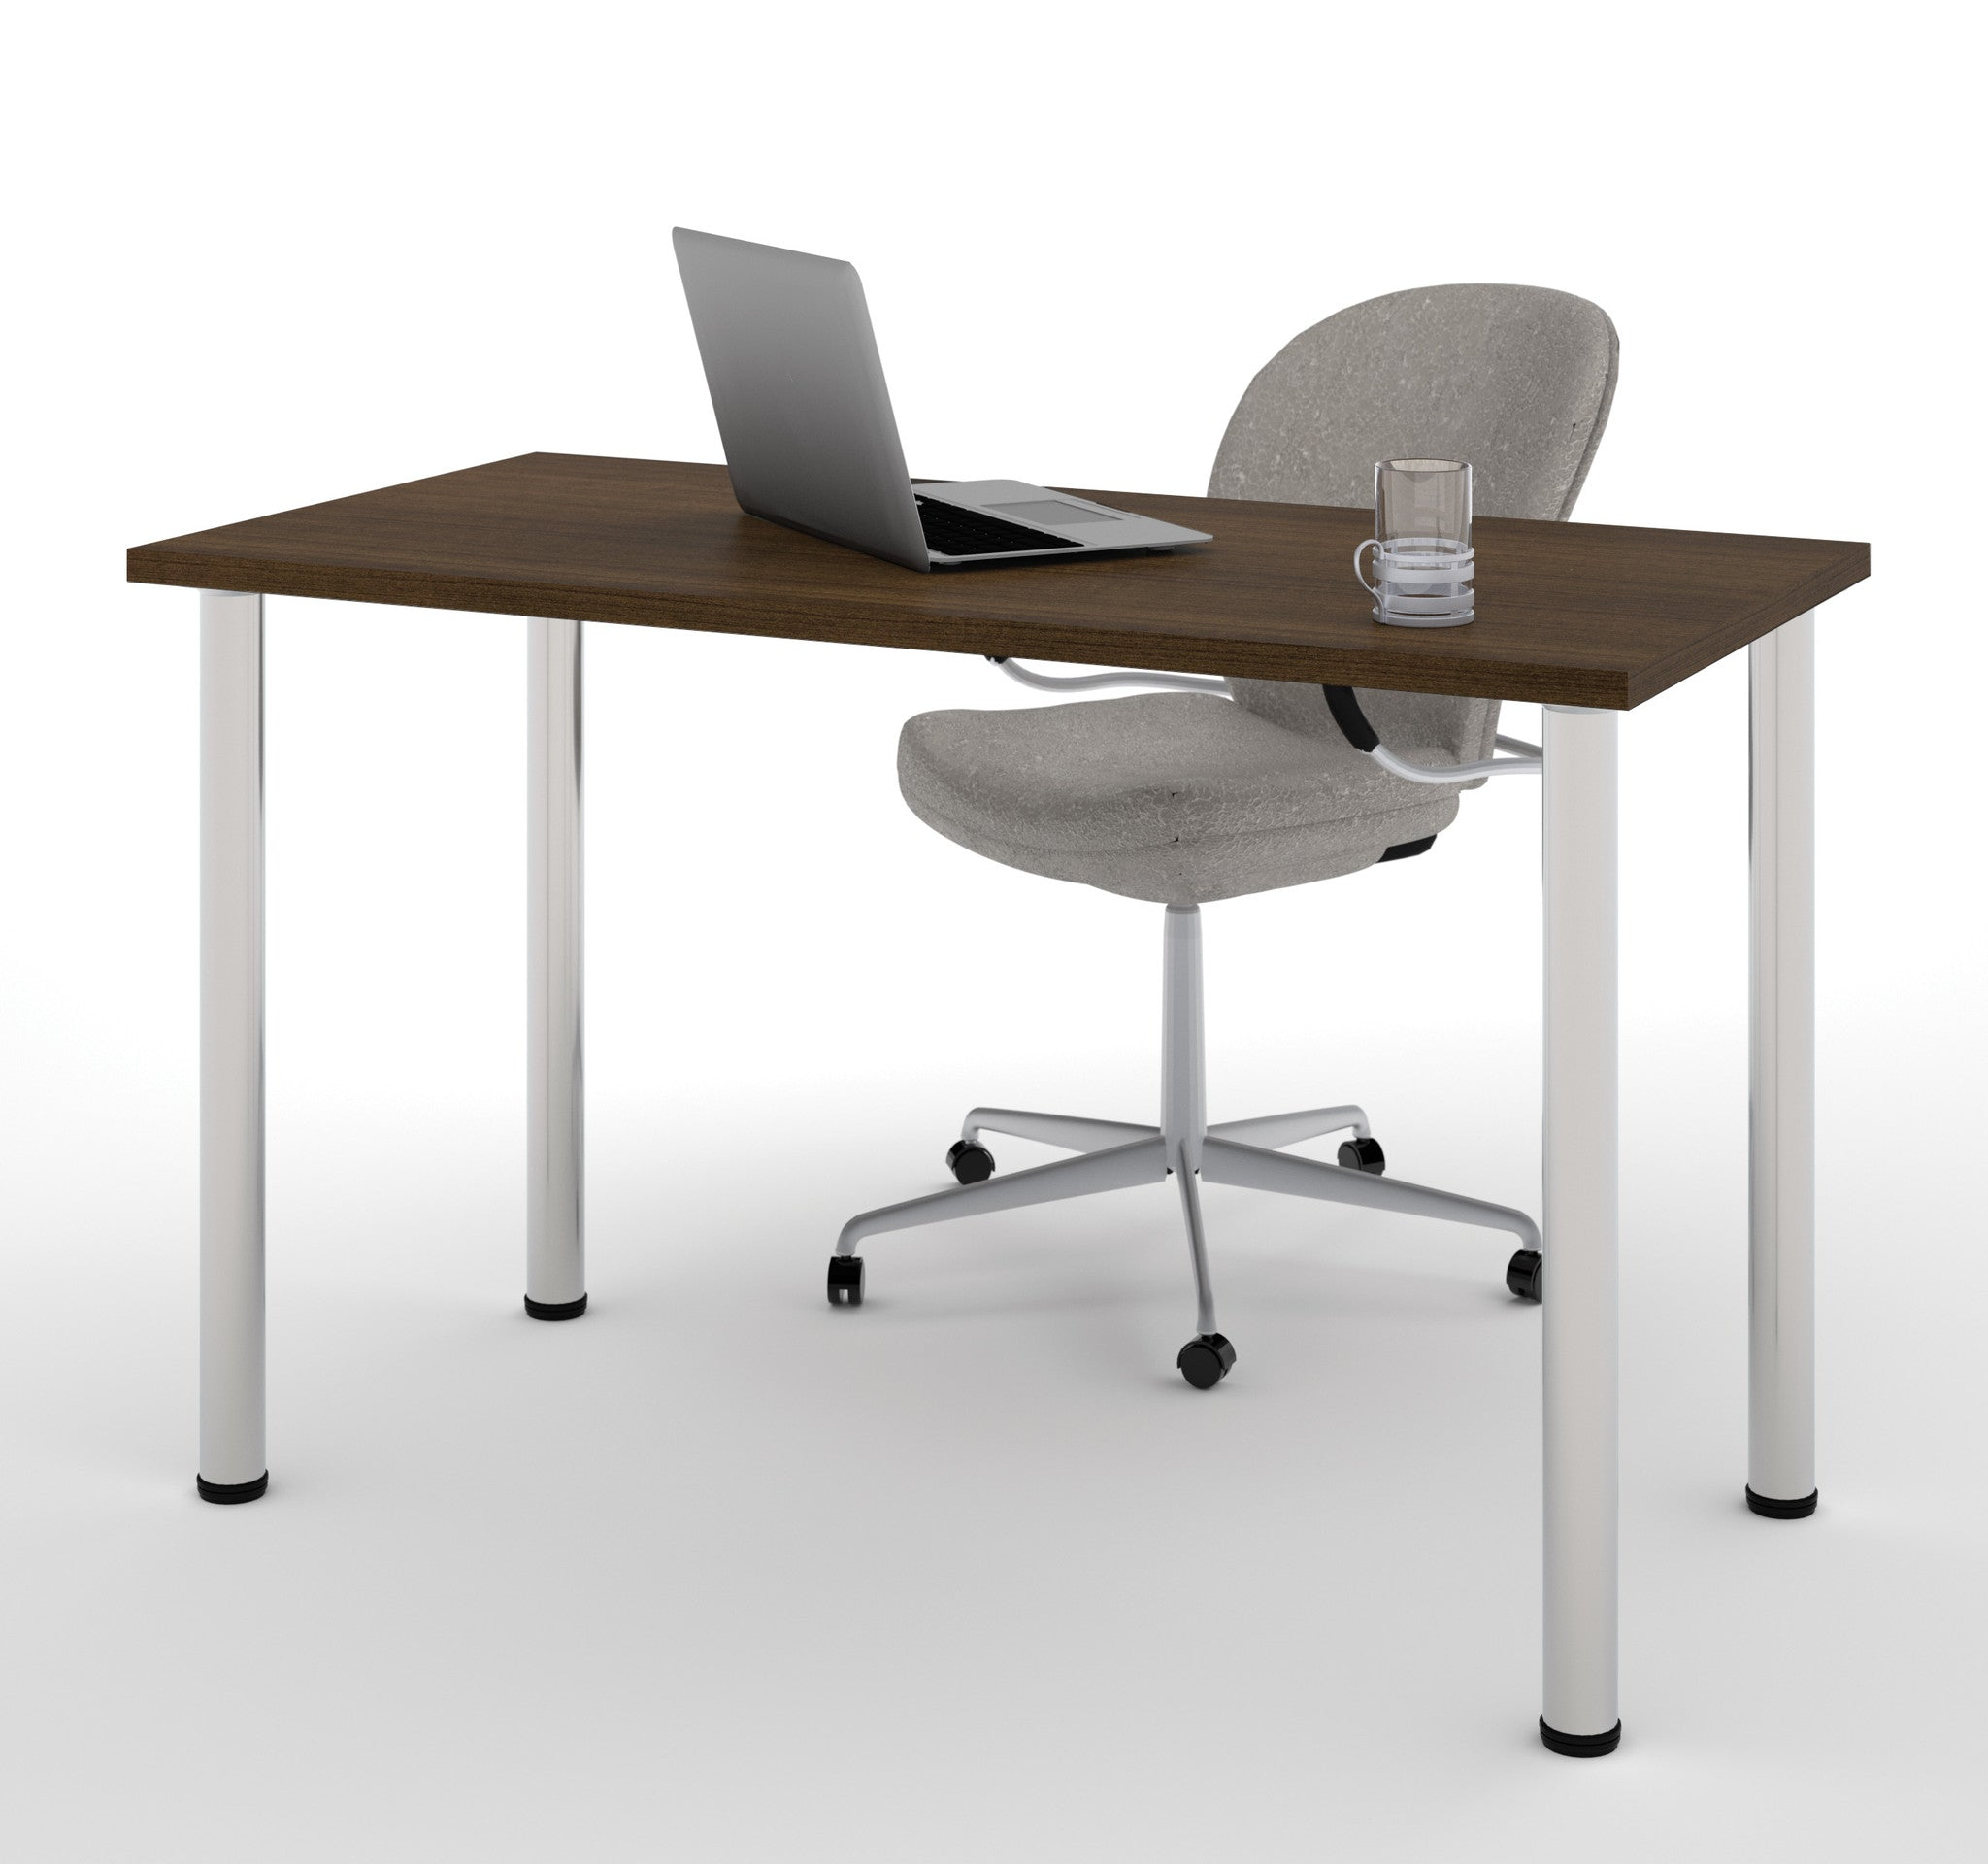 "Modern 48"" Office Desk with Premium Tuxedo Top & Silver Legs"